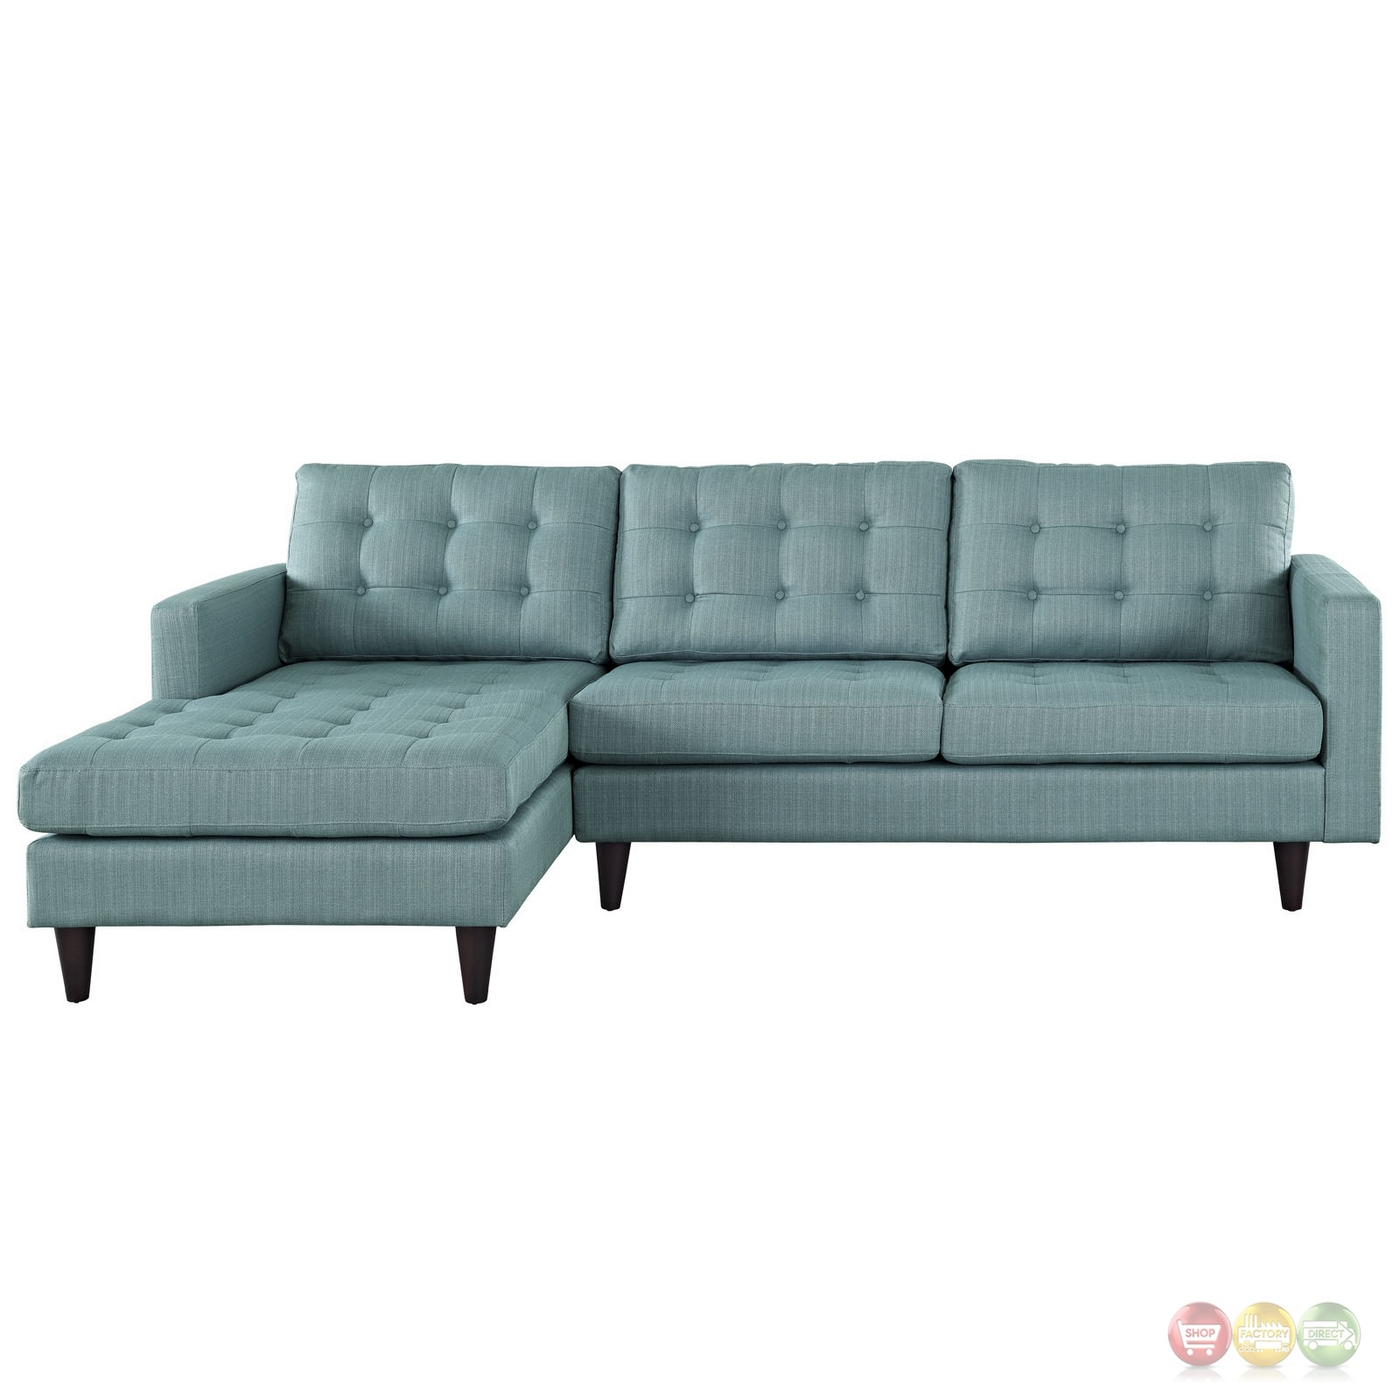 Mid Century Modern Empress Left Facing Button Tufted With Regard To Florence Mid Century Modern Left Sectional Sofas (View 6 of 15)